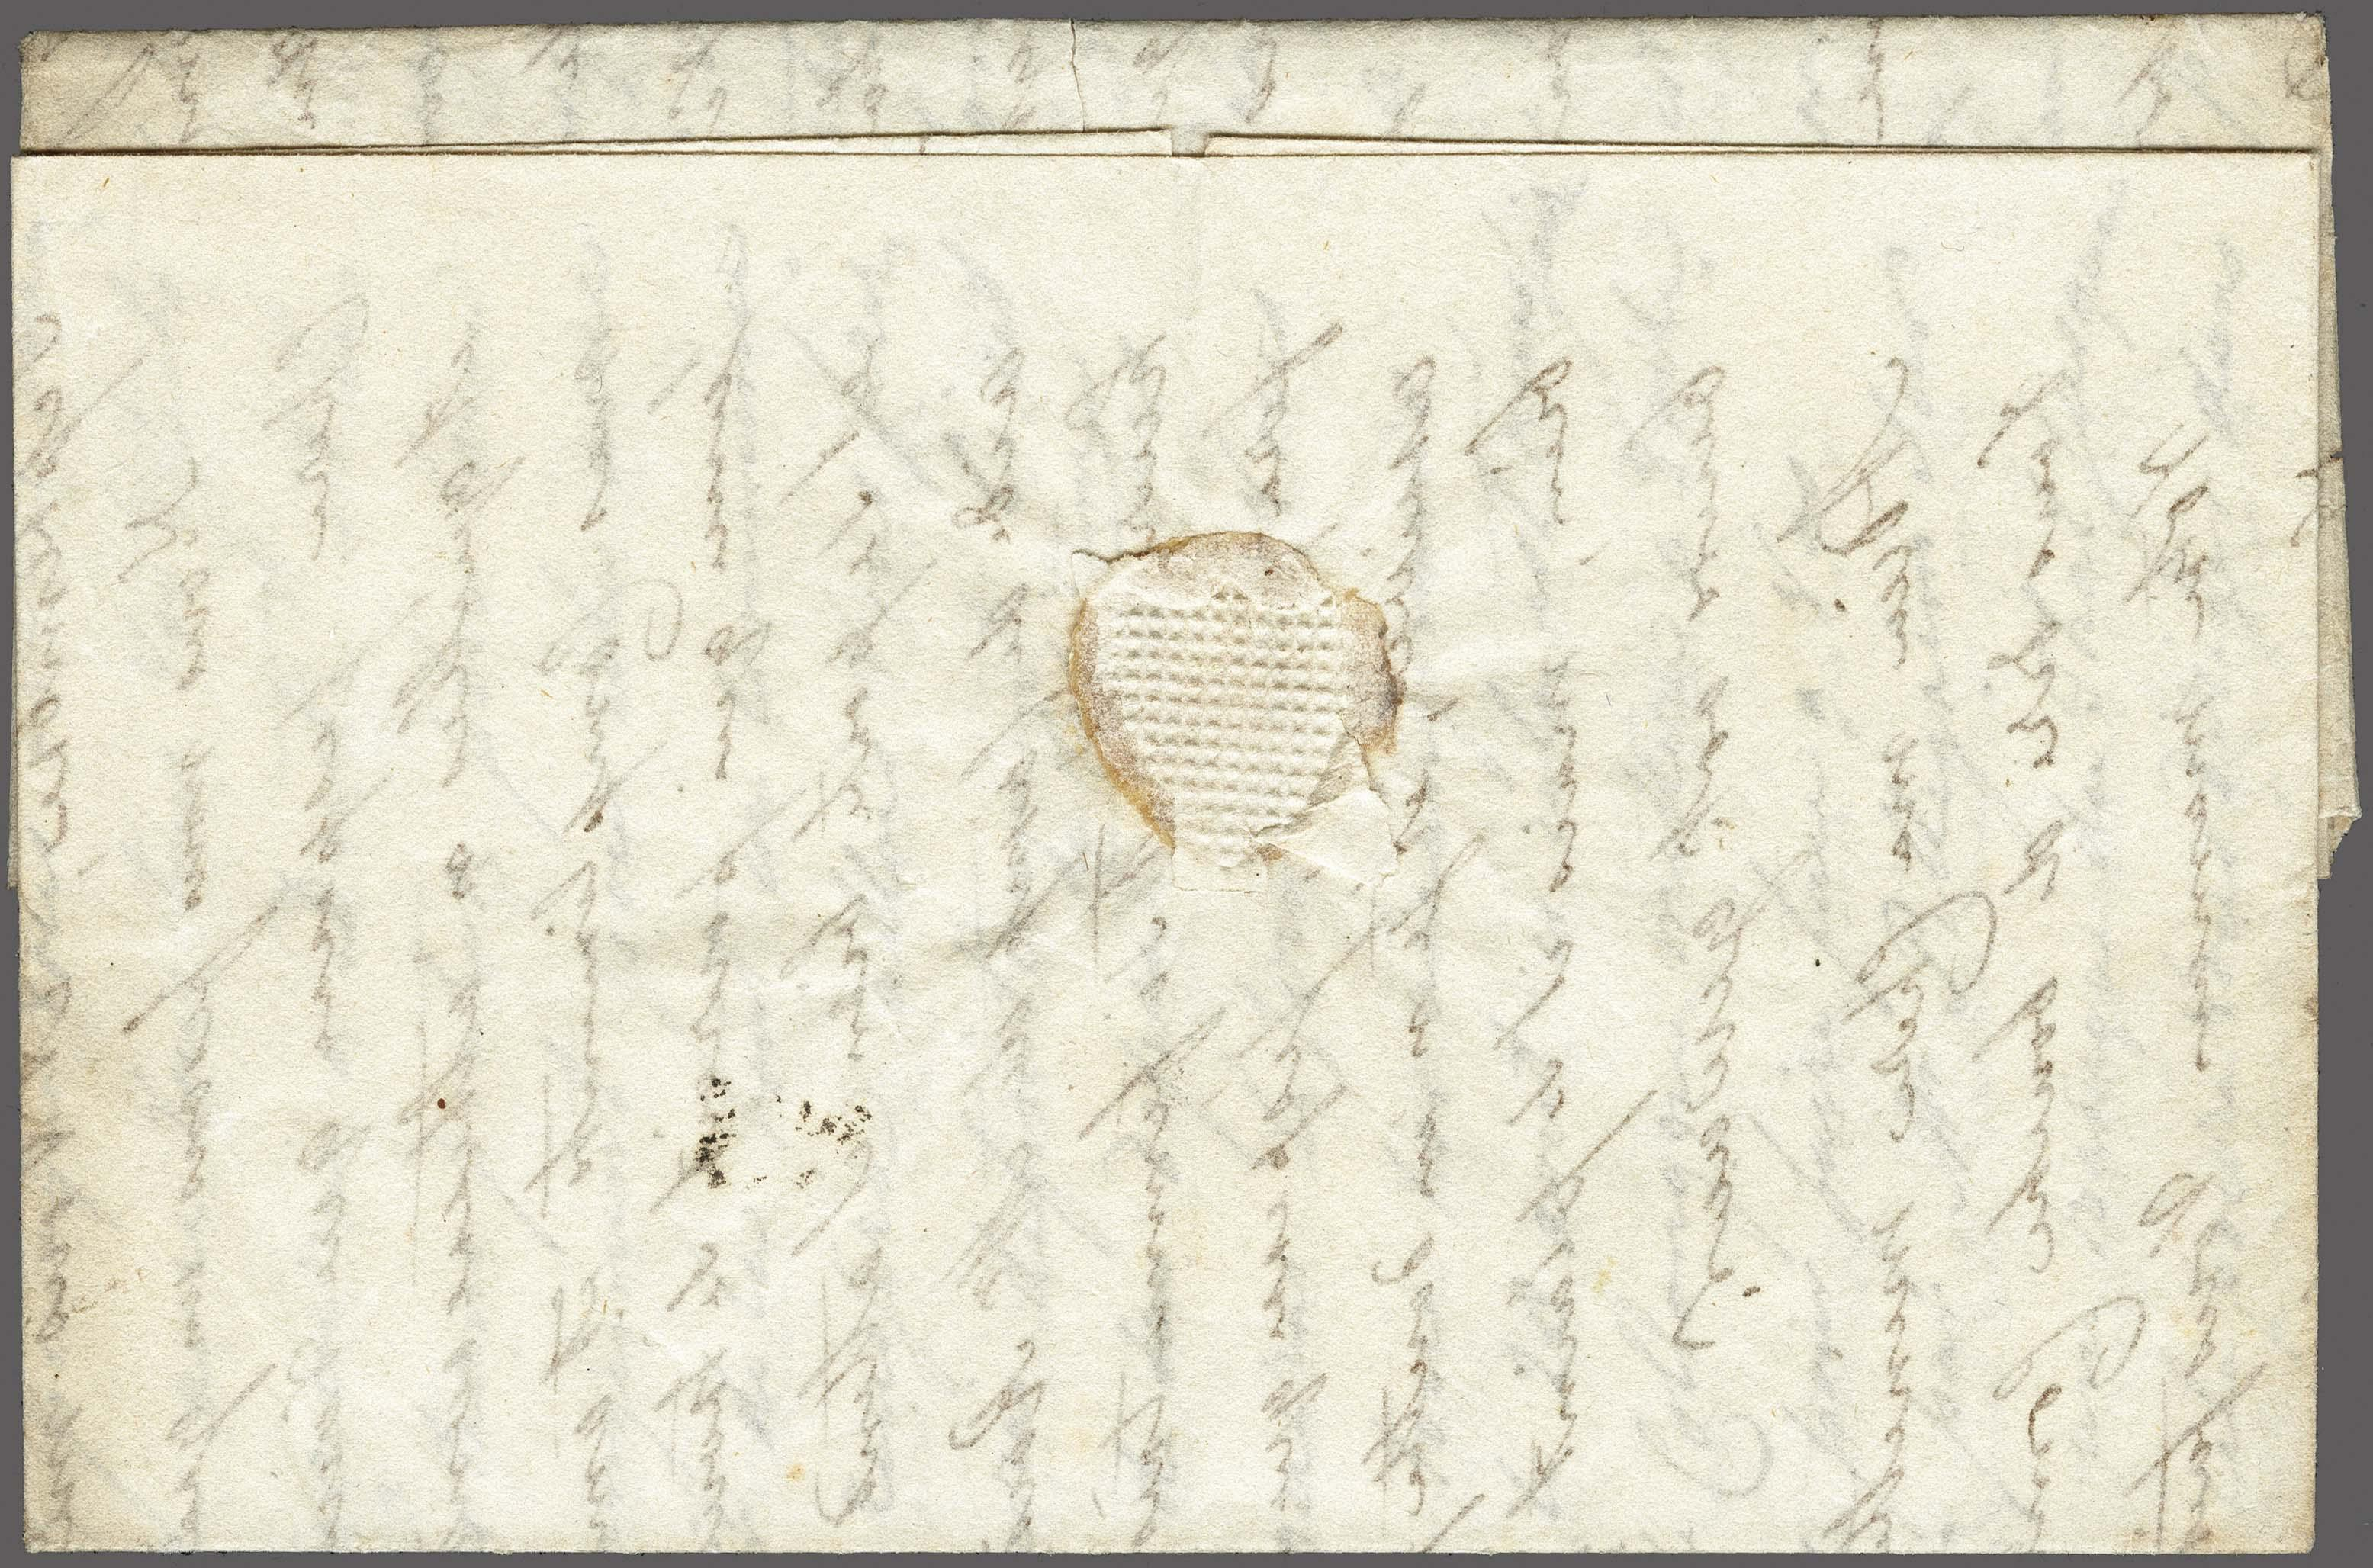 Lot 2349 - Netherlands and former colonies Netherlands -  Corinphila Veilingen Auction 250-253 - Day 3 - Netherlands and former colonies - Single lots & Picture postcards